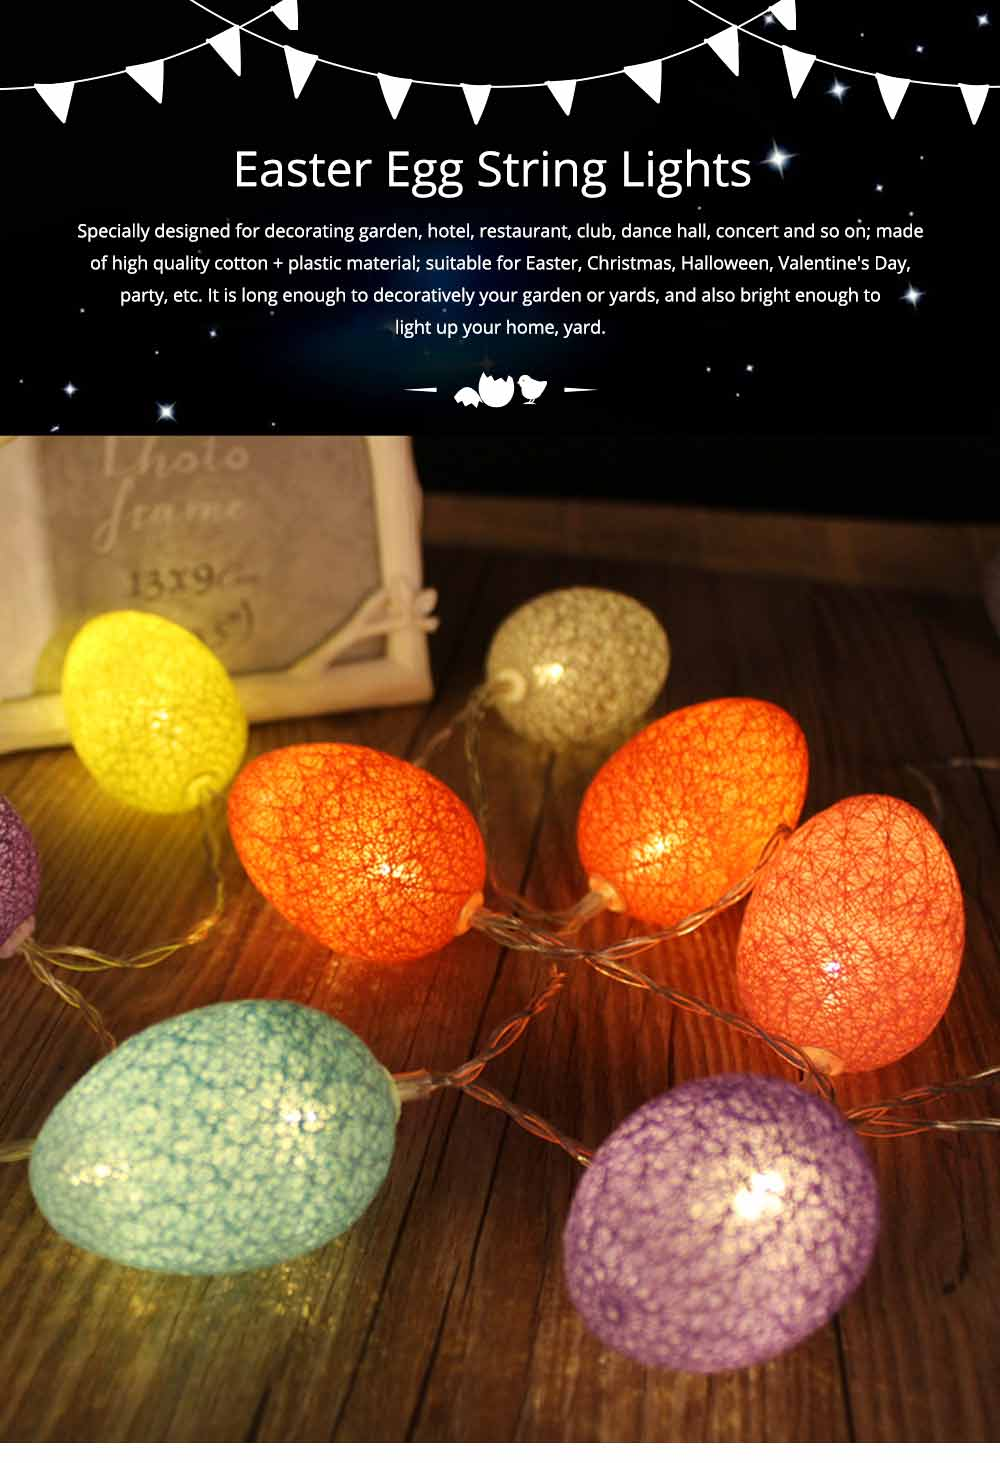 Easter Egg String Lights, Cotton Thread Battery Operated LED String Egg Lamp Home Party Decor 0